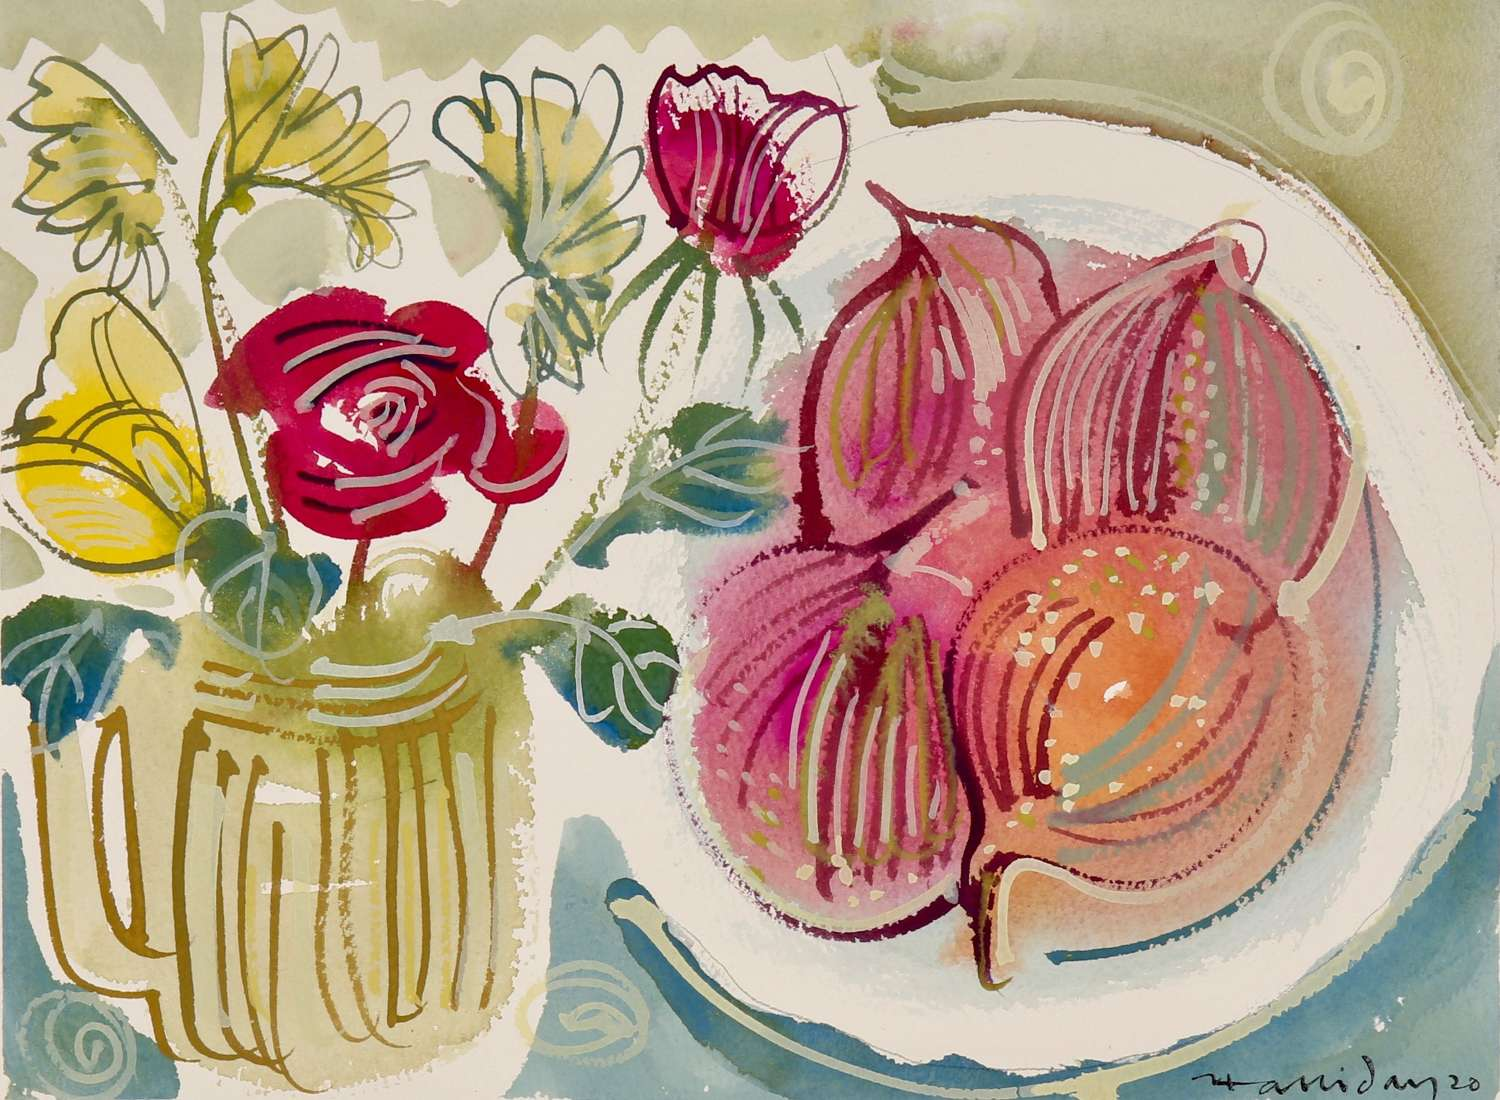 Alan Halliday: A collection of Watercolours of Fruits and Flowers.